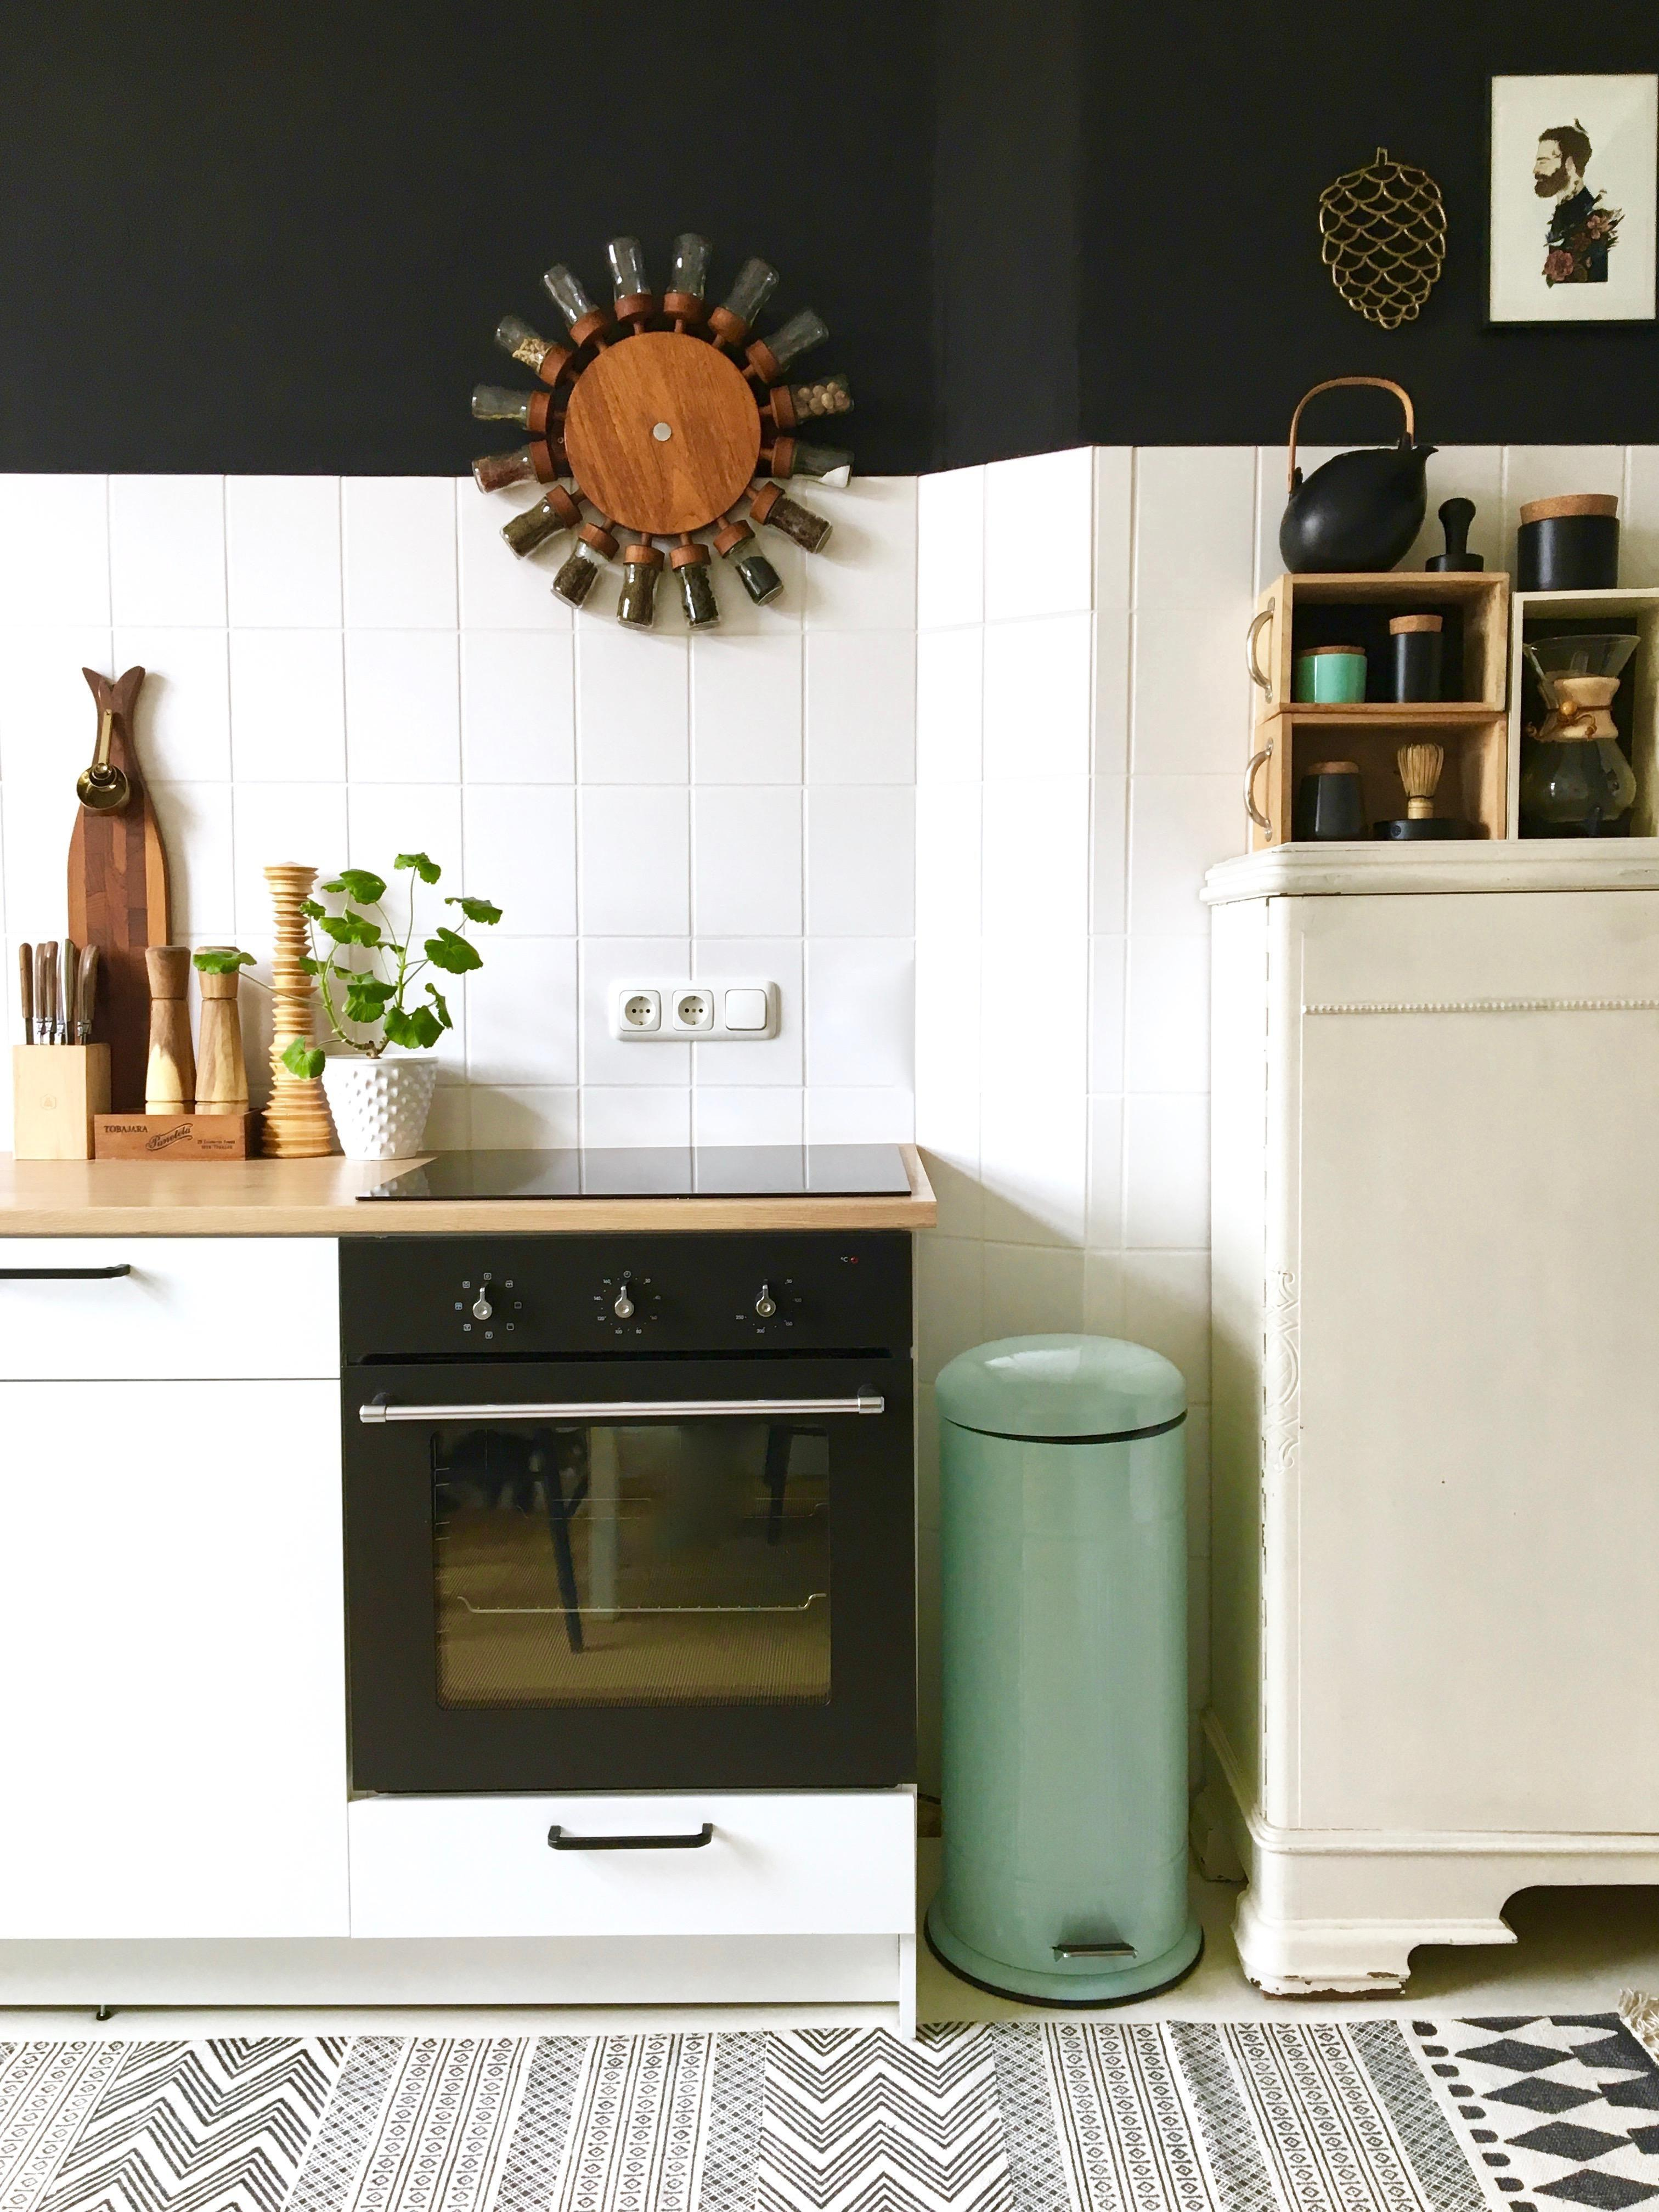 Kitchenlove  danishdesign vintage blackwall altbau myhome midcentury  e3f764dc 9482 492b ae5e 12bb166f1728